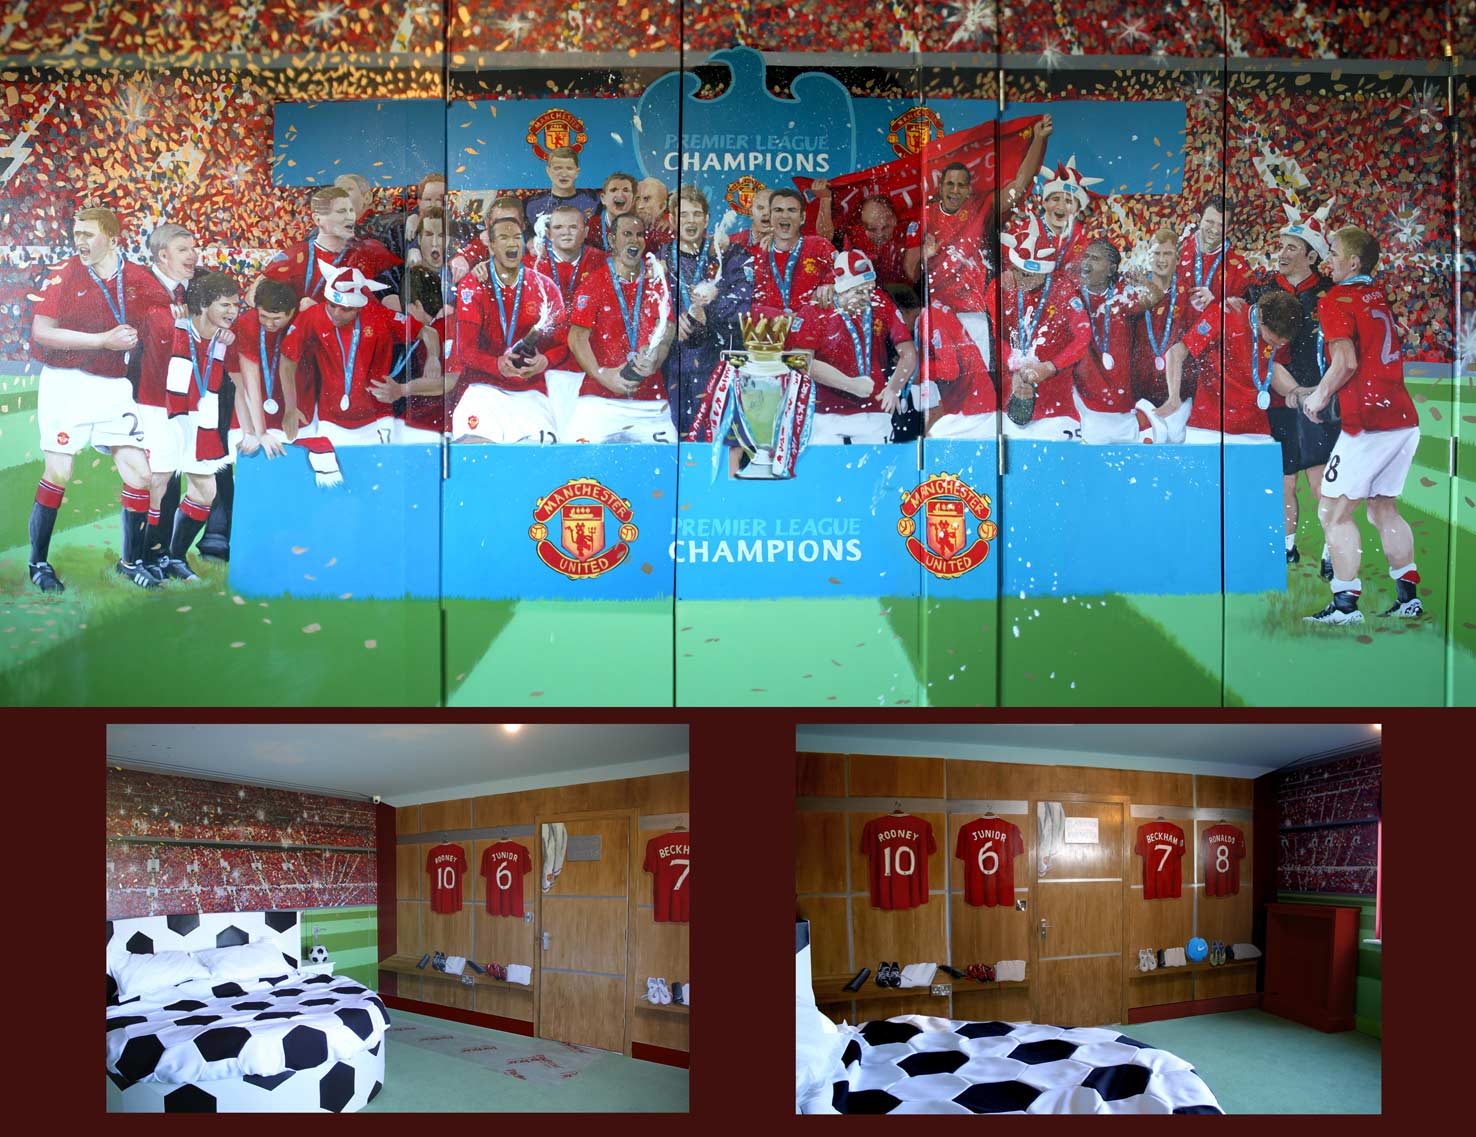 Charming Mural Alt Ambiente Spanish Mural Alt Locker Room Mural Alt Football U2026 Idea